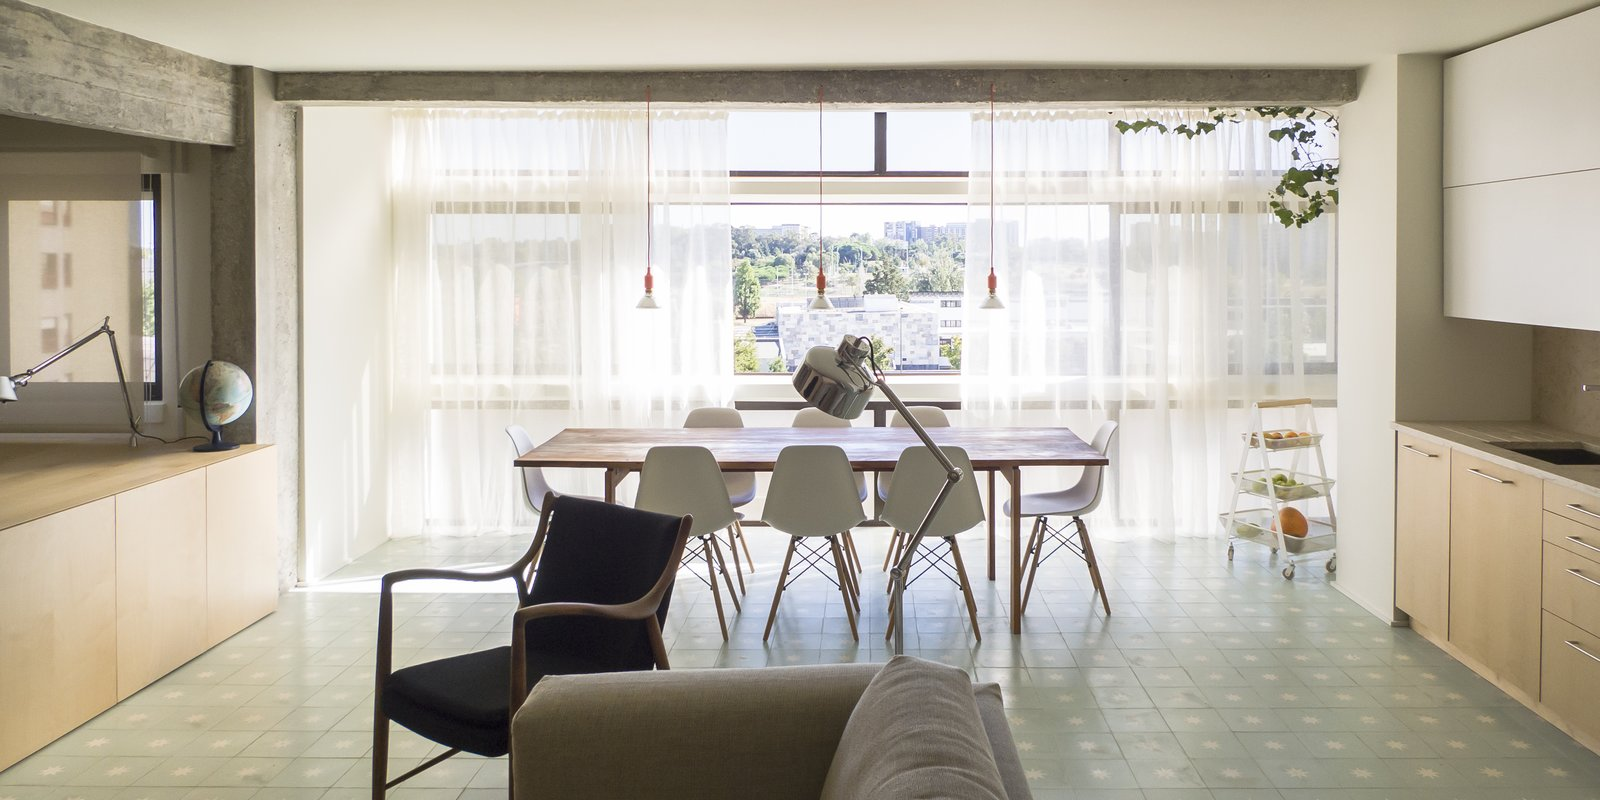 Dining Room, Chair, Table, Ceramic Tile Floor, and Ceiling Lighting - Lisbon, Portugal Dwell Magazine : July / August 2017  The Henriques/Moreira Residence from Lisbon Vision